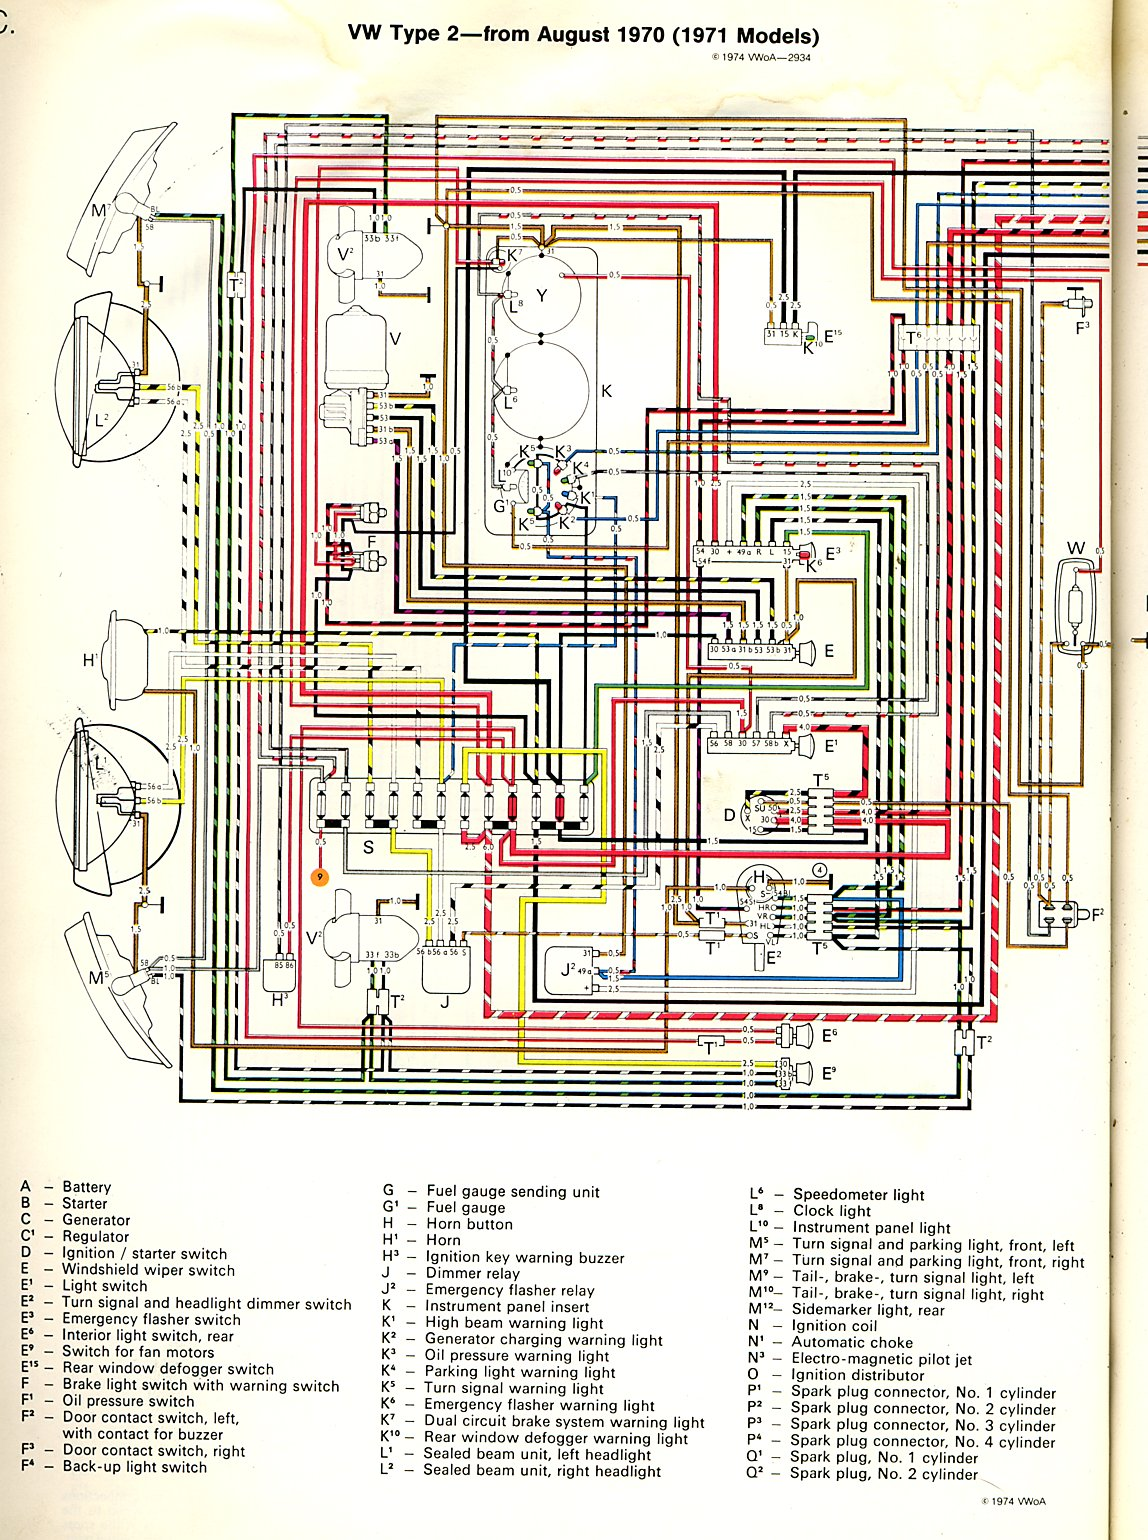 baybus_71a thesamba com type 2 wiring diagrams 1971 vw bus wiring diagram at beritabola.co